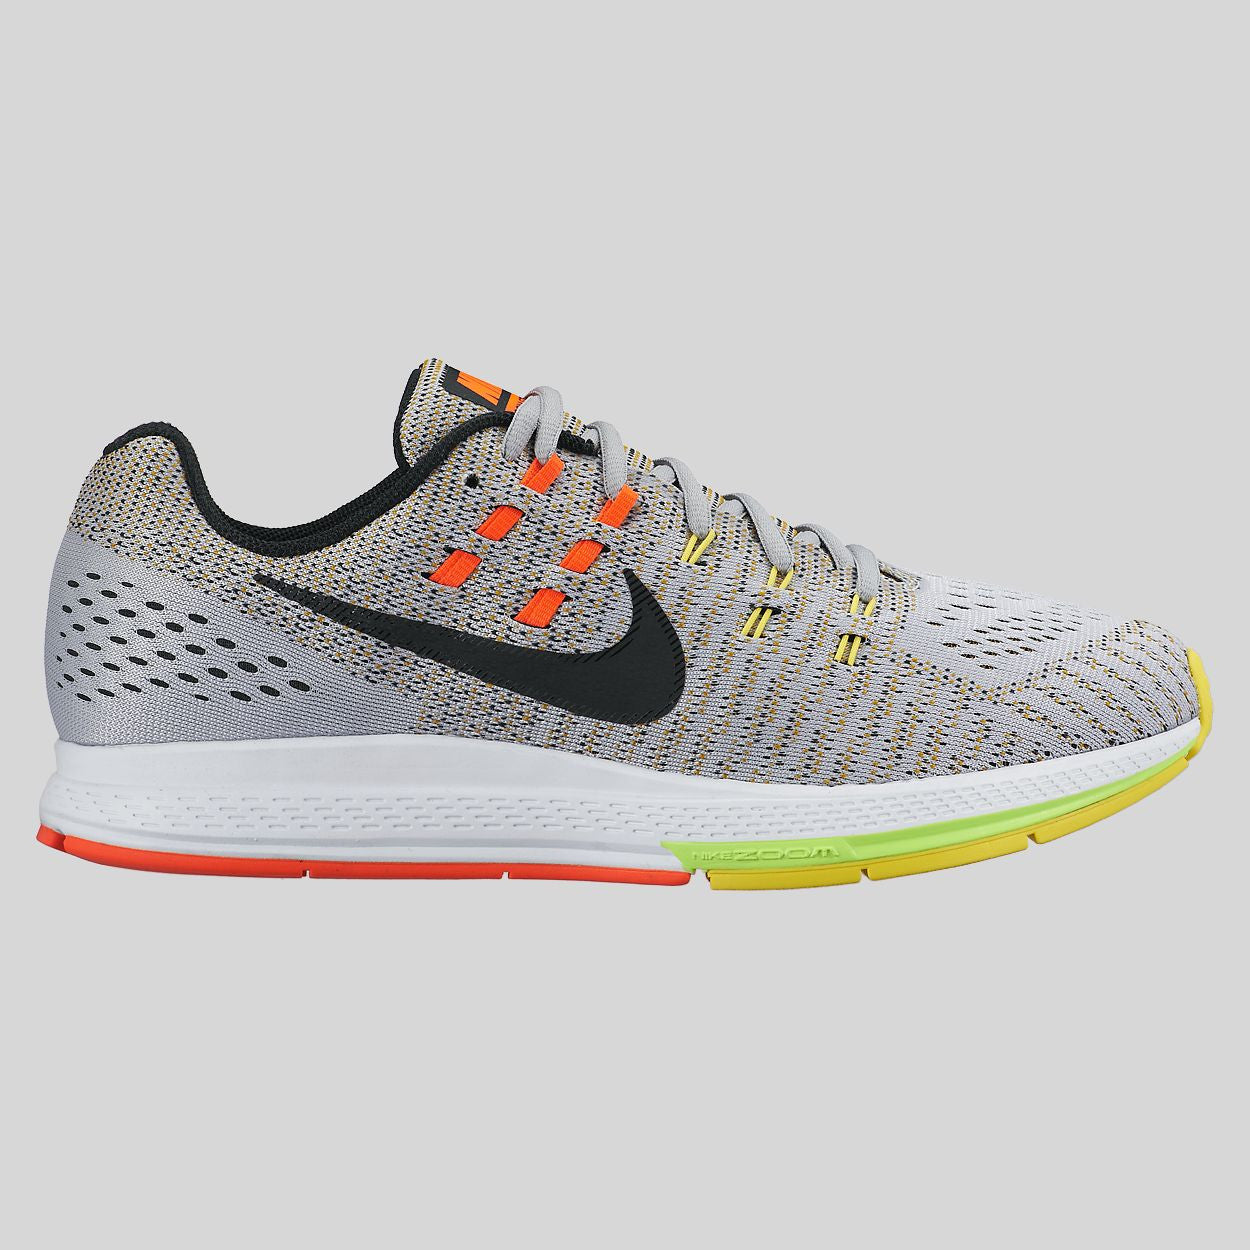 Nike Air Zoom Structure 19 Wolf Grey Black Option Yellow (806580-007)